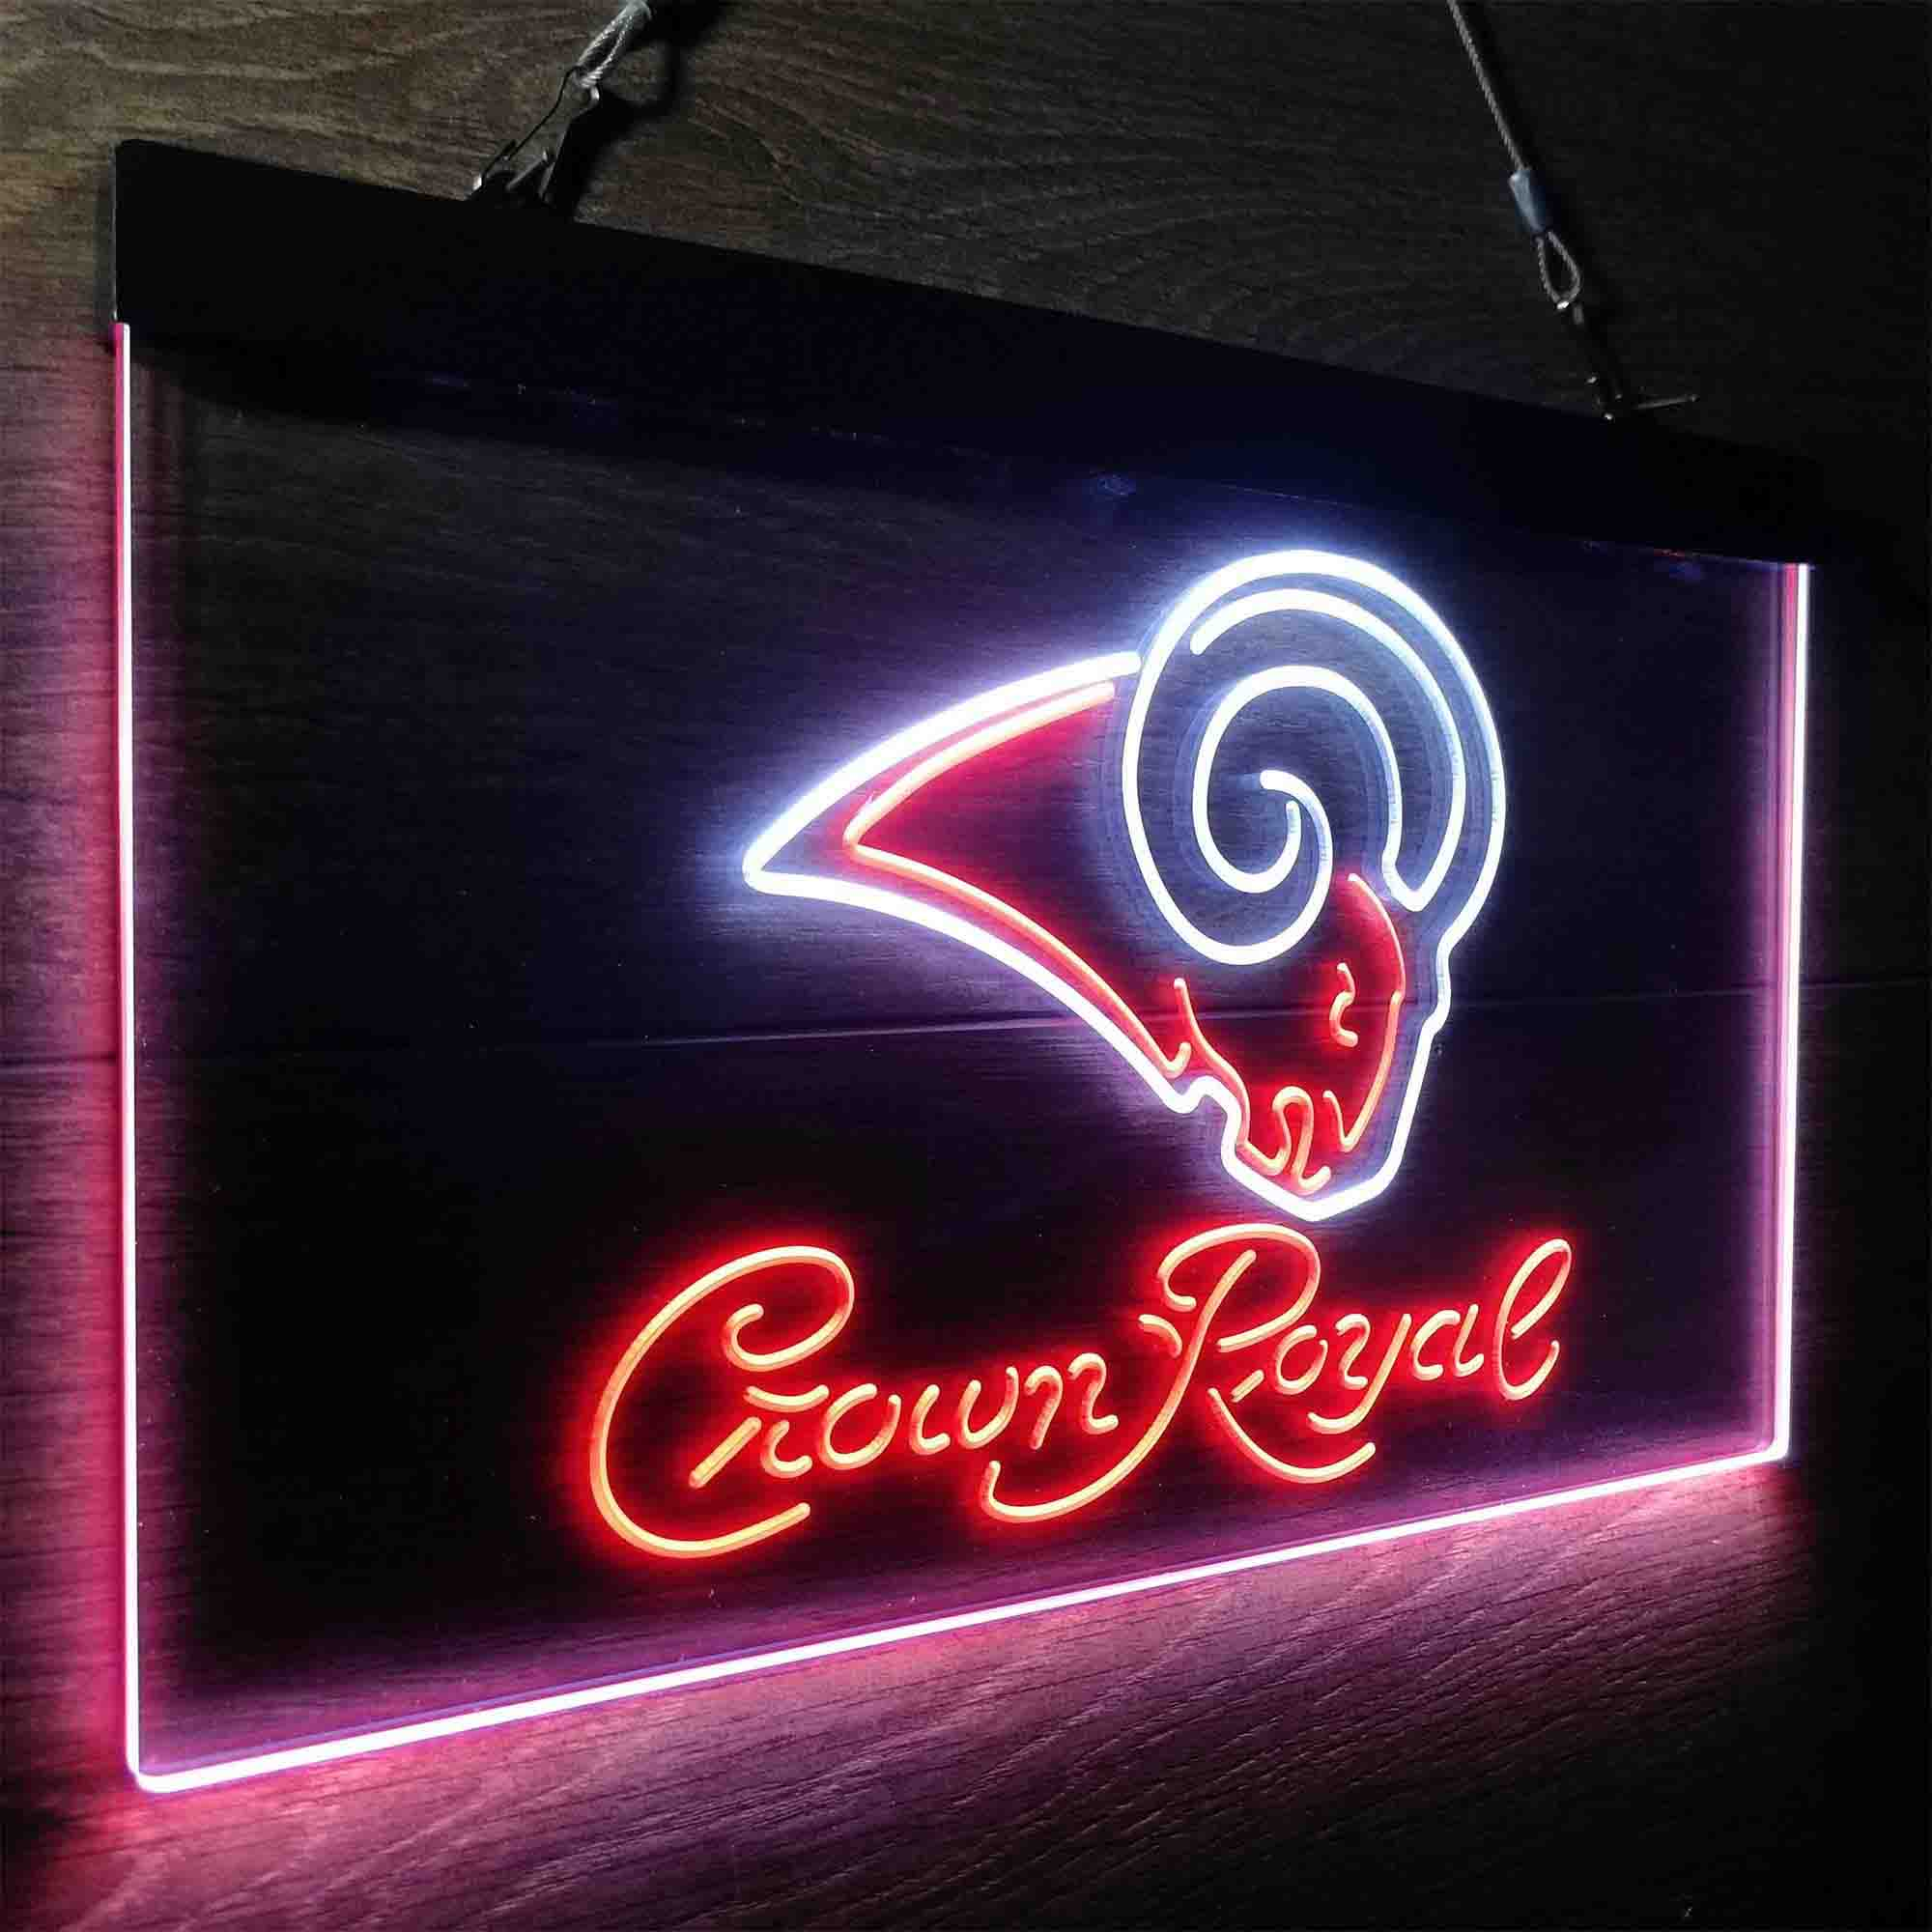 Crown Royal Bar Los Angeles Rams Est. 1937 Neon-Like LED Sign